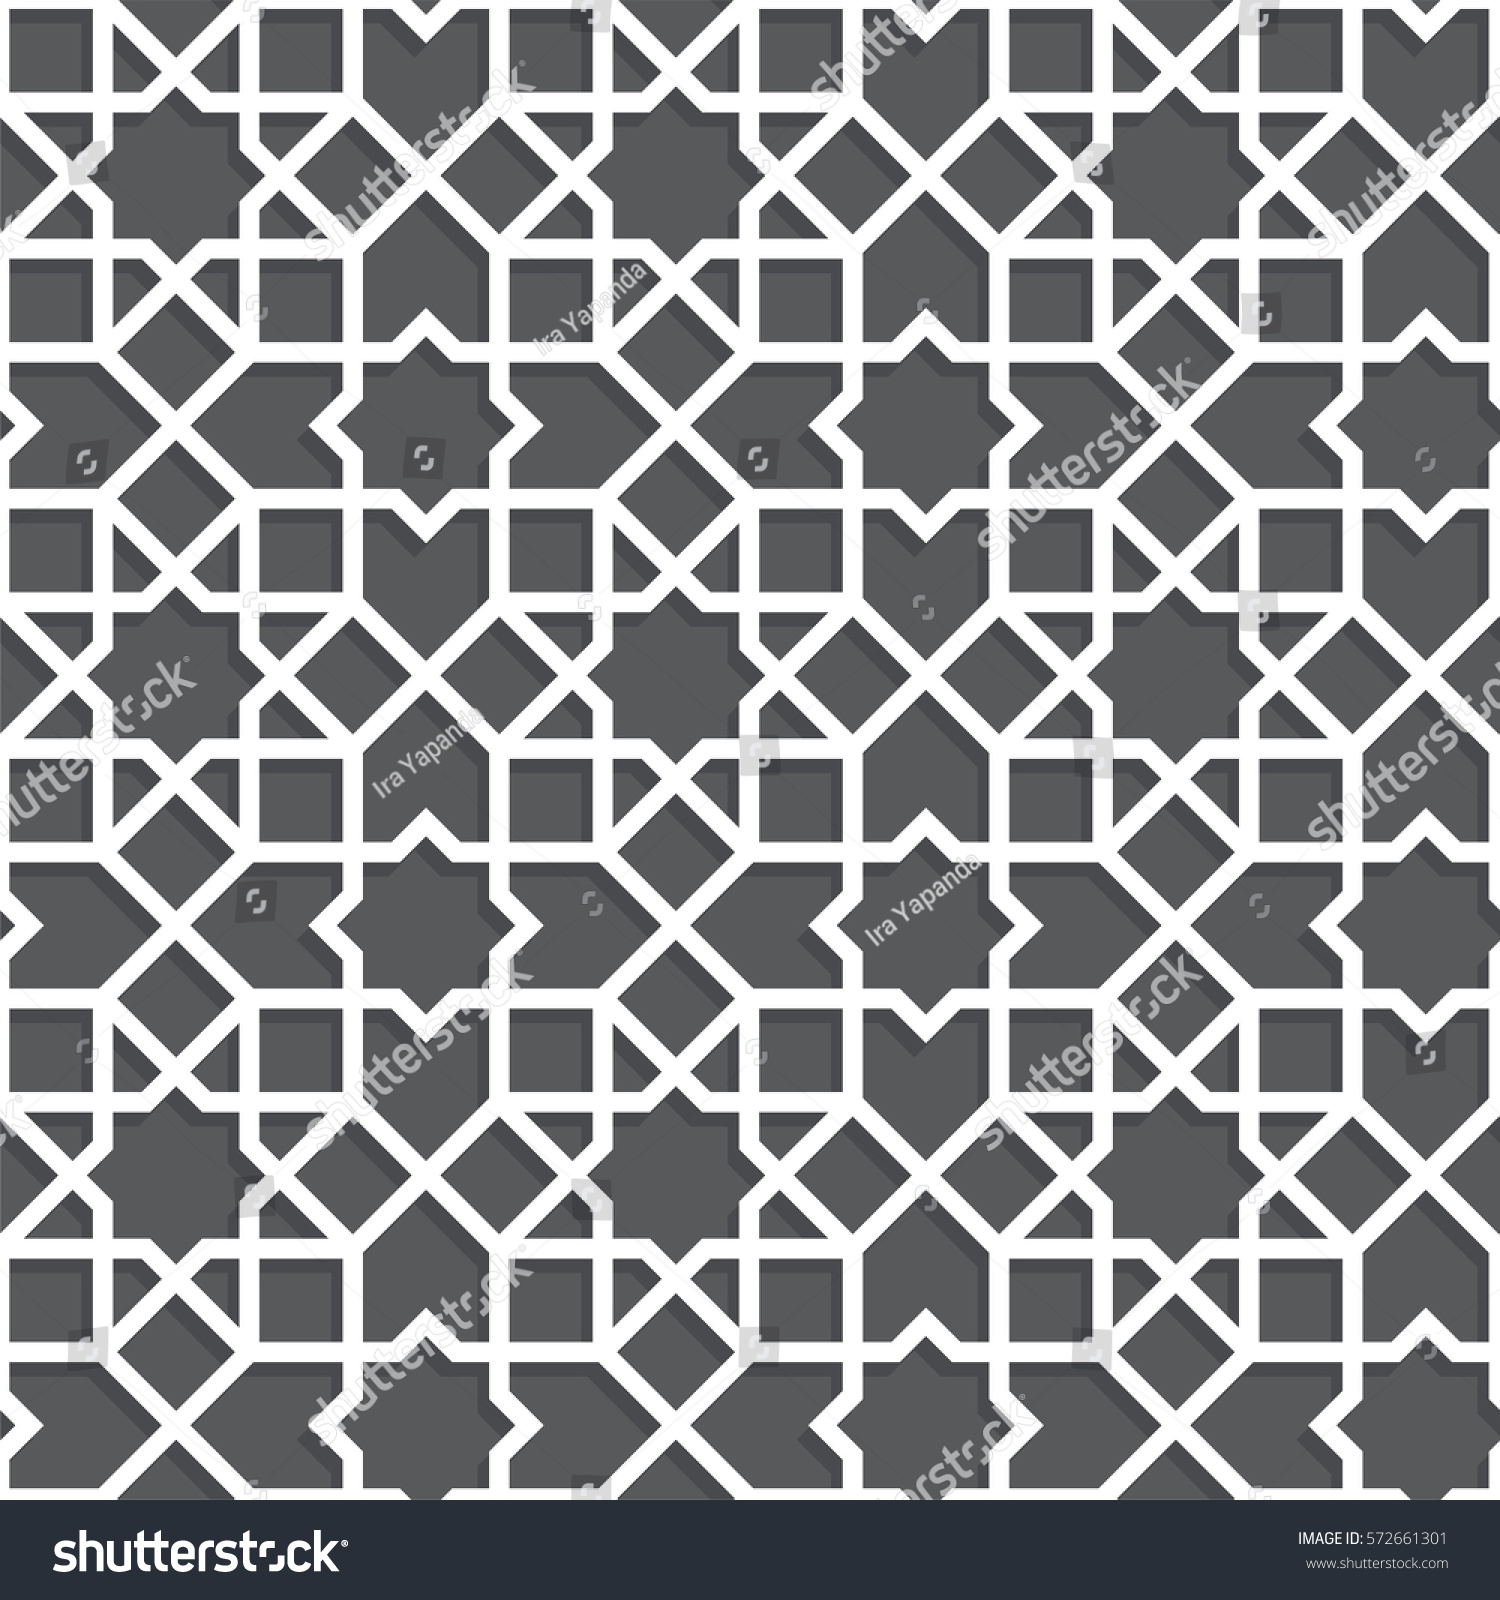 Islamic Black White Pattern Seamless Vector Stock Vector ...